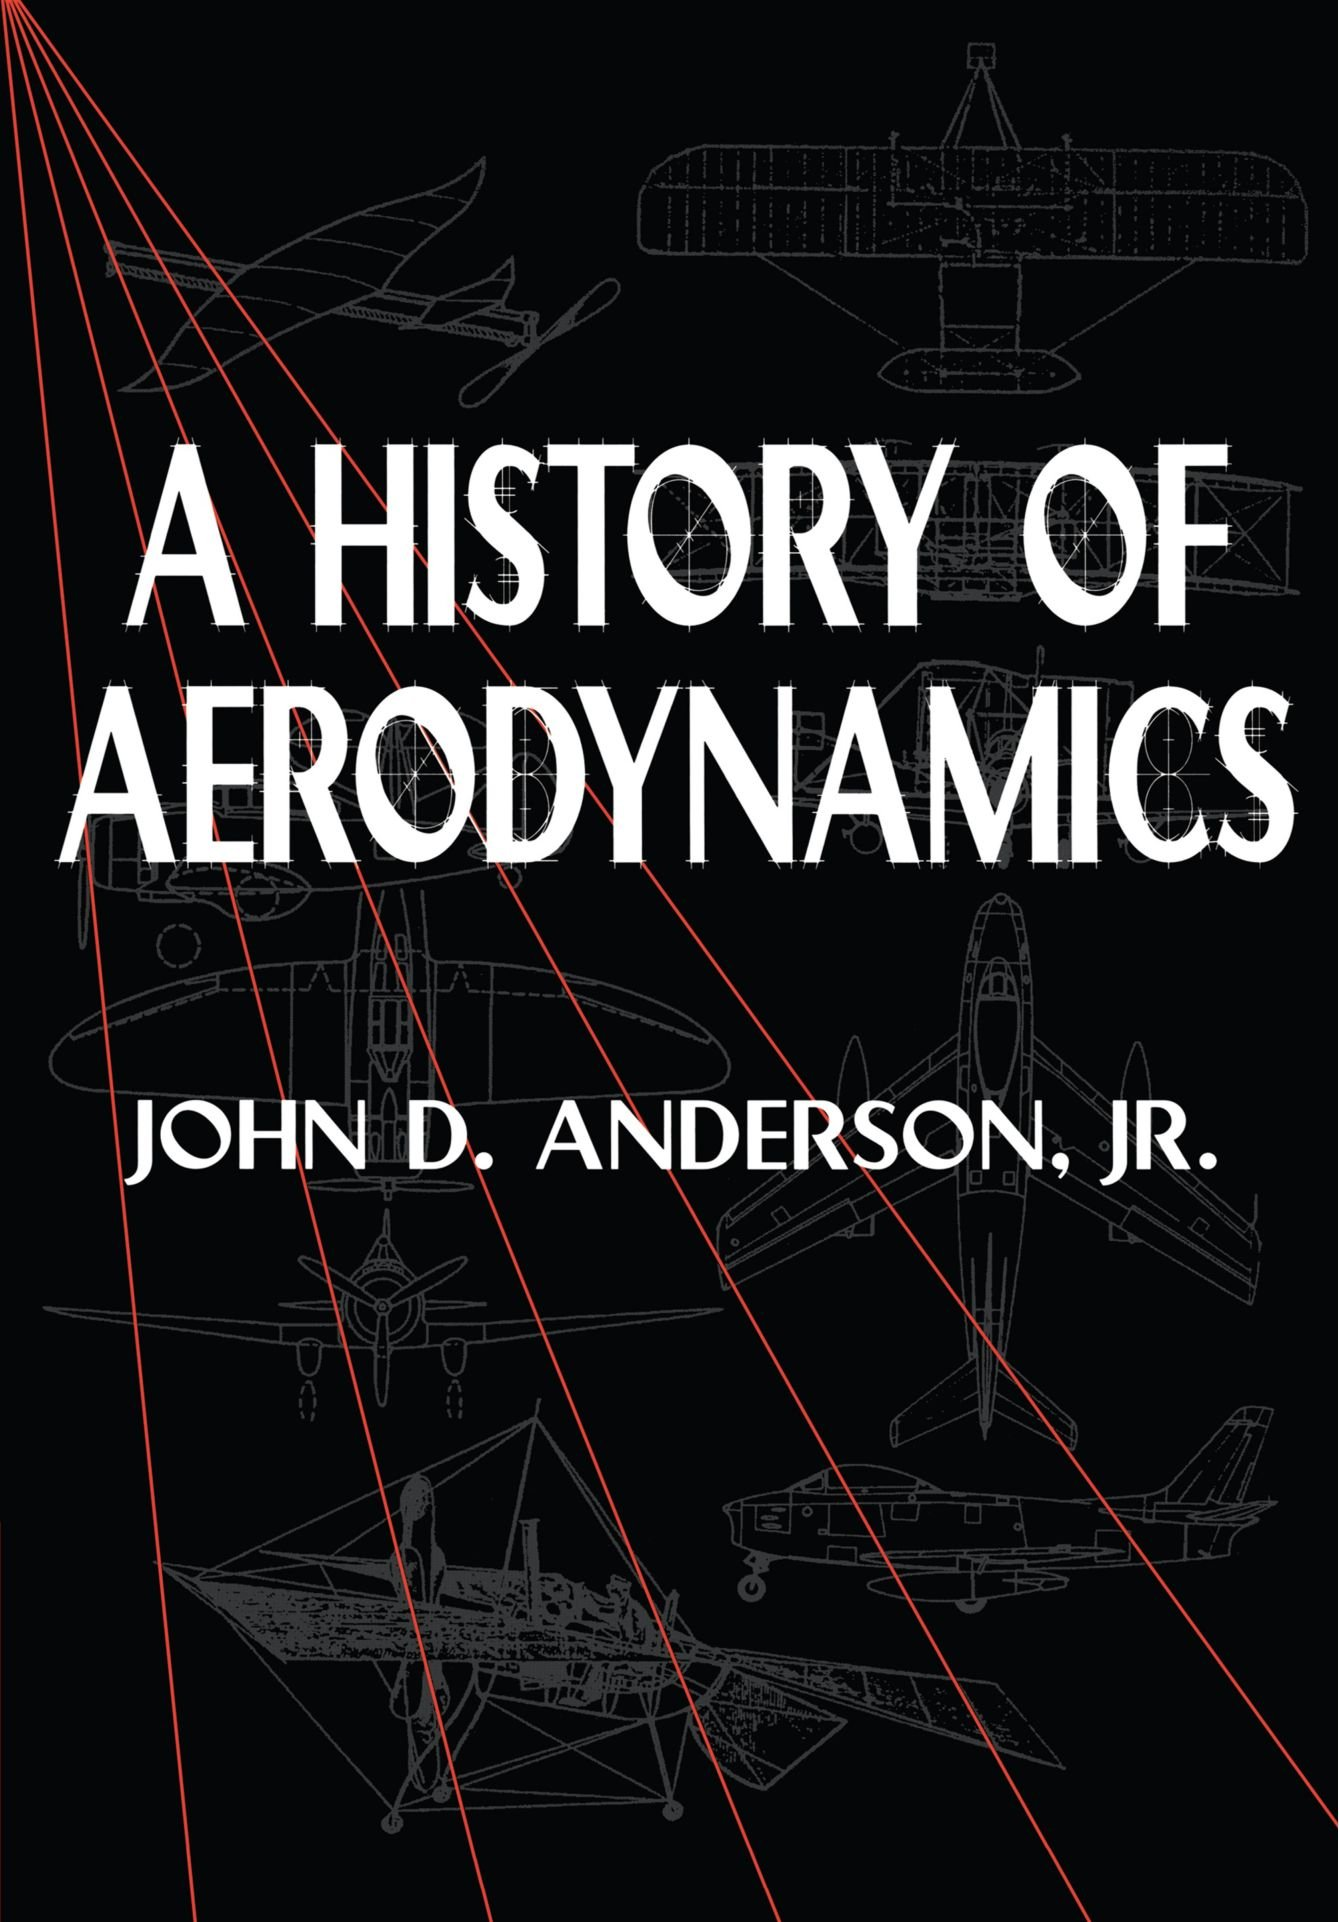 A History of Aerodynamics: And Its Impact on Flying Machines (Cambridge Aerospace Series) by Cambridge University Press